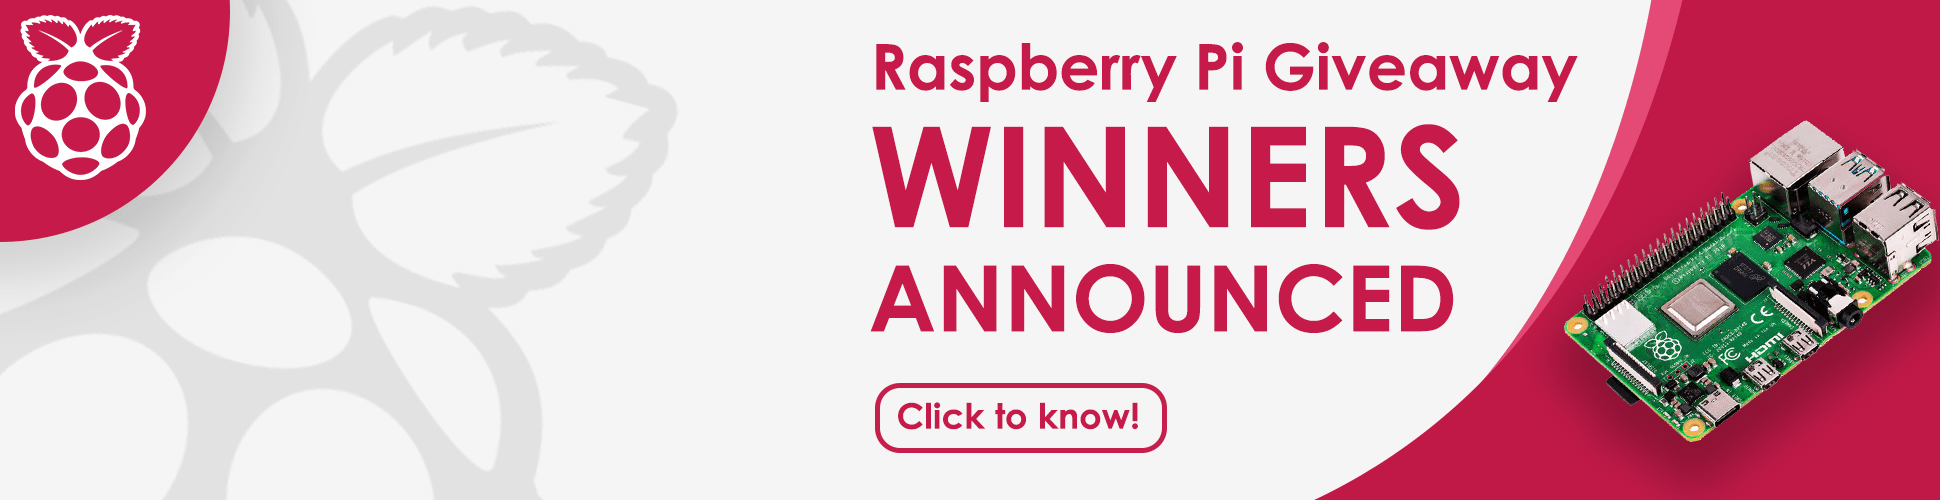 Raspberry Pi Giveaway Winners Announcement - Arpil 2021 Banner